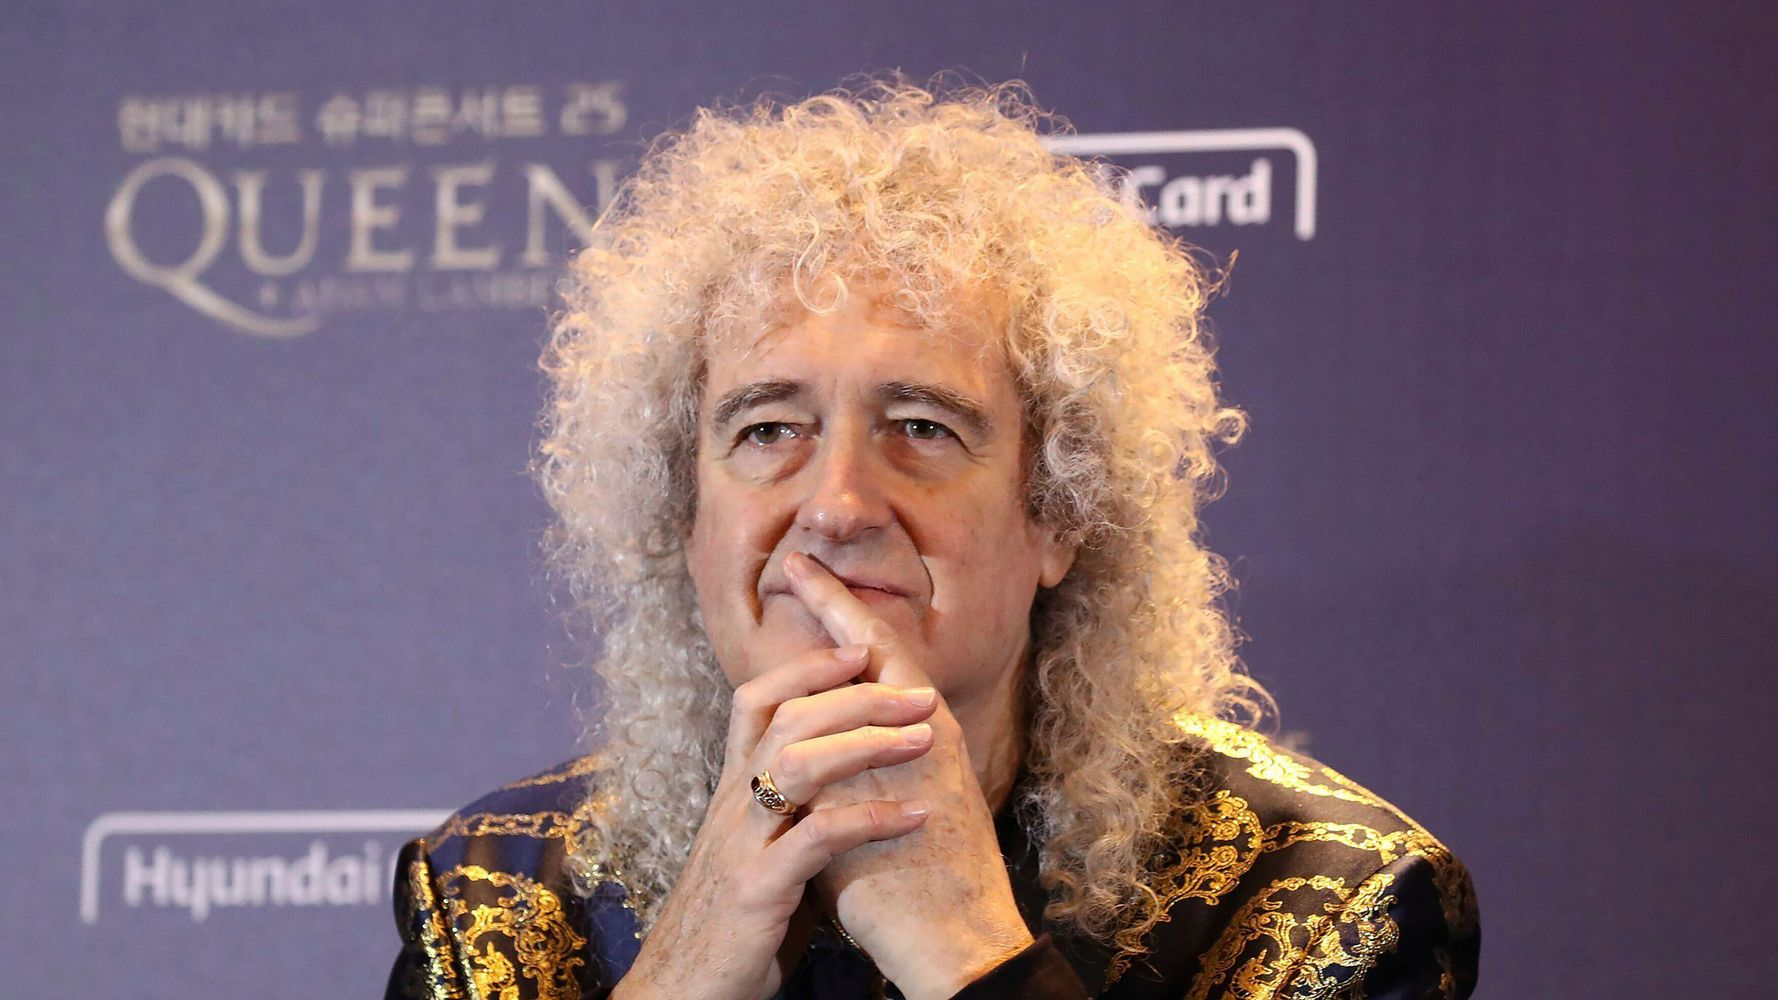 Queen Guitarist Brian May Recovering From Recent Heart Attack